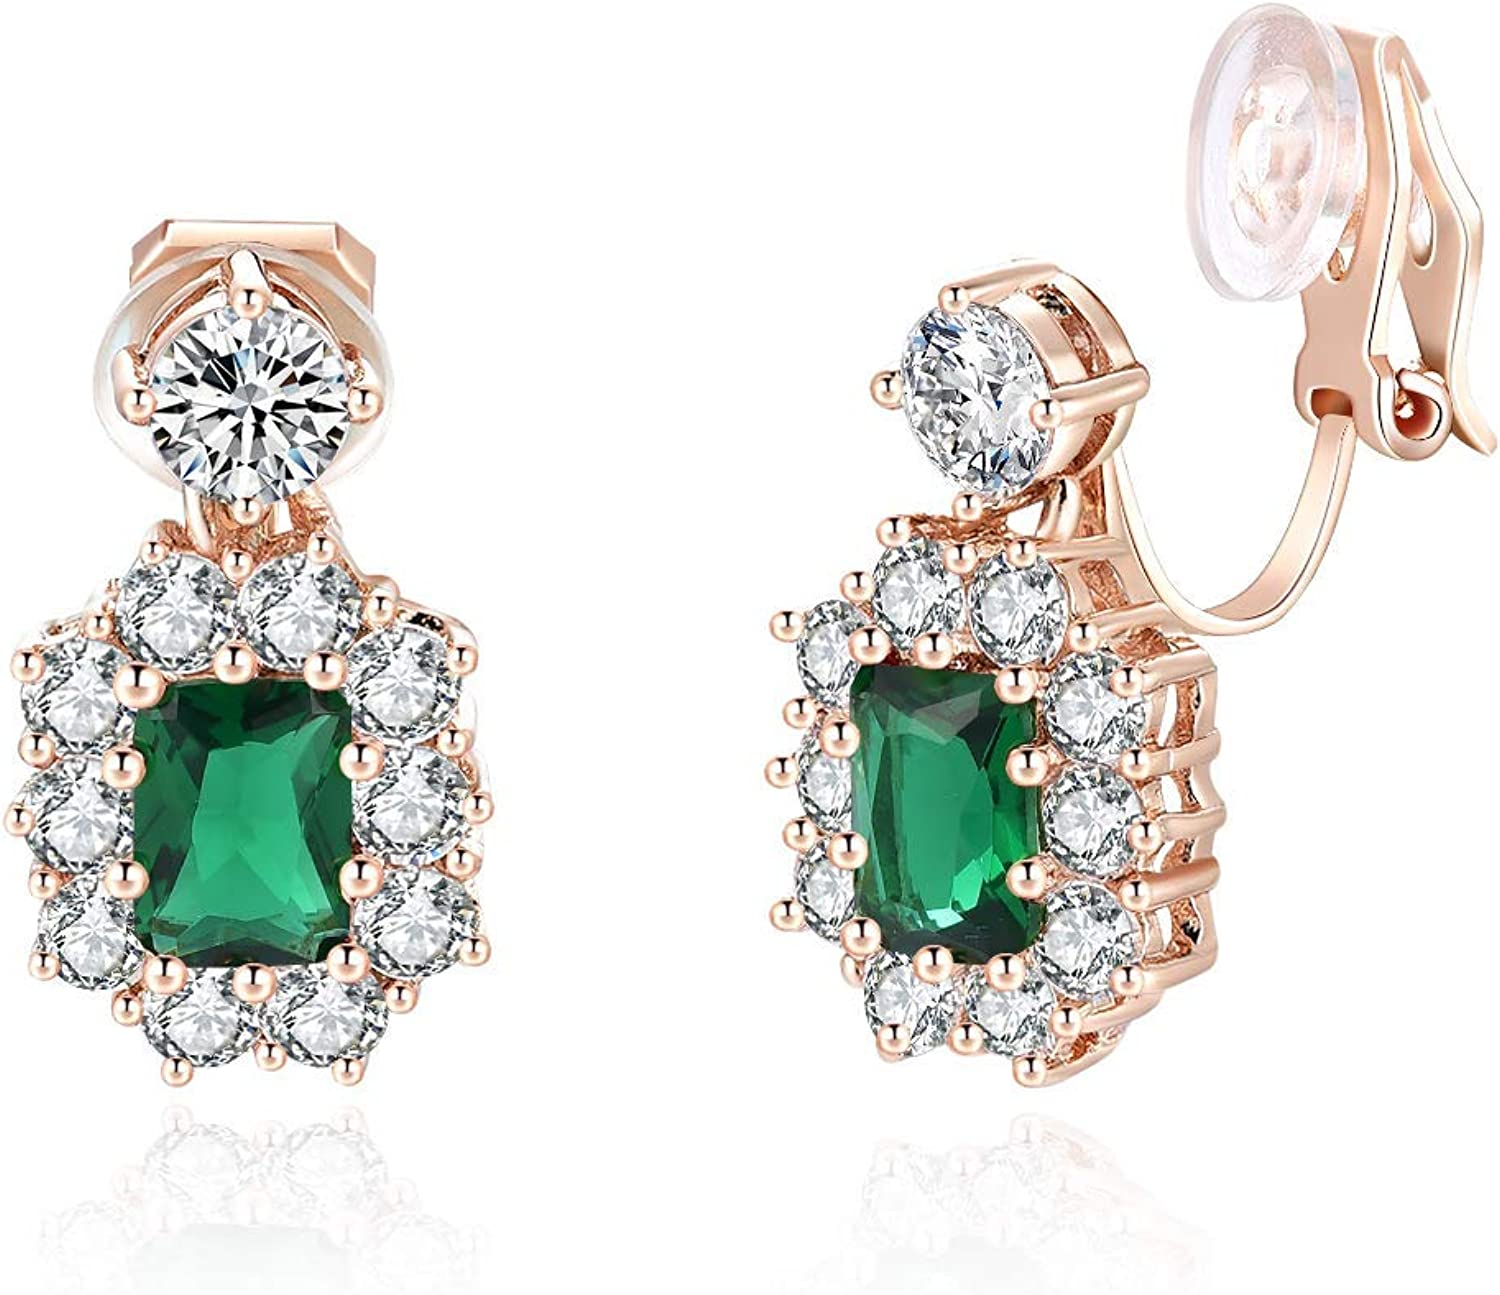 FANCIME Ladies Clip On Earrings para Mujer Cubic Zirconia Granate/Green Emerald Clip On Earrings CZ Pendientes no perforados para mujer